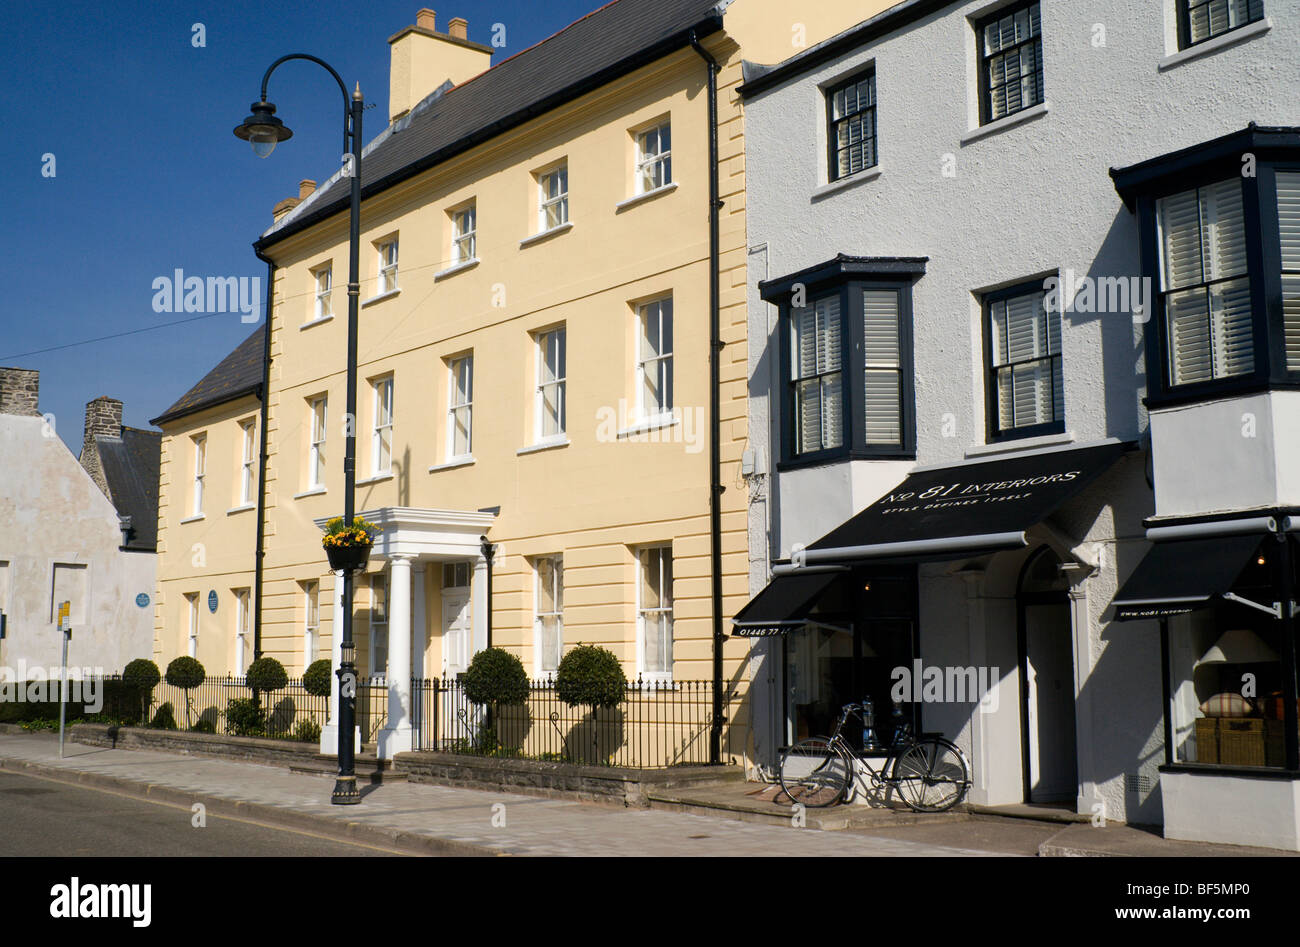 town house, high street, cowbridge, vale of glamorgan, south wales - Stock Image